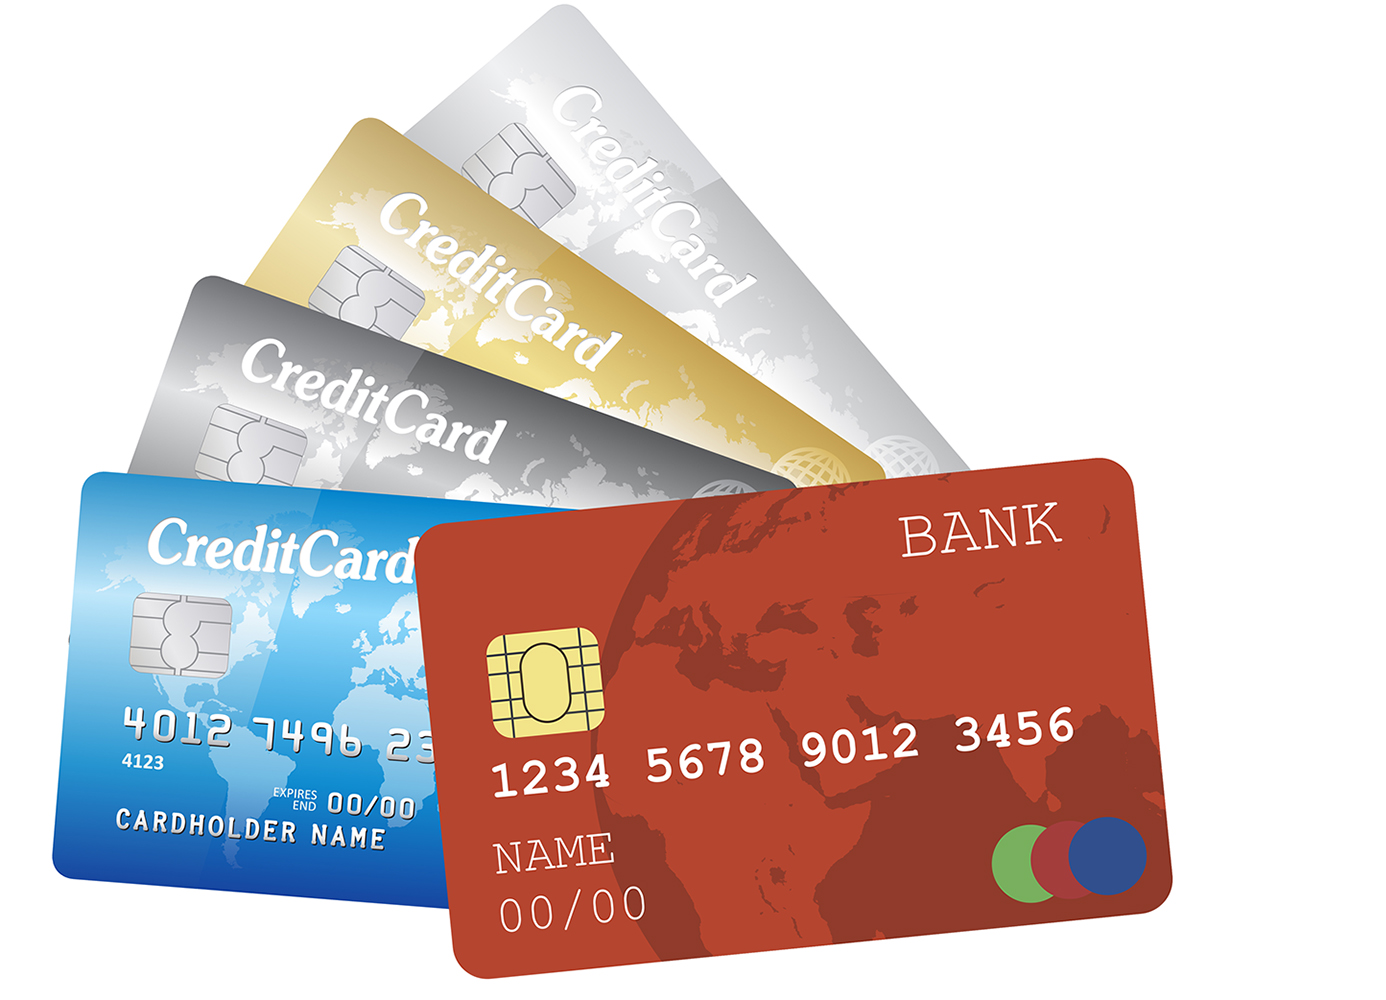 How Many Credit Cards Is Too Many? - Good Times